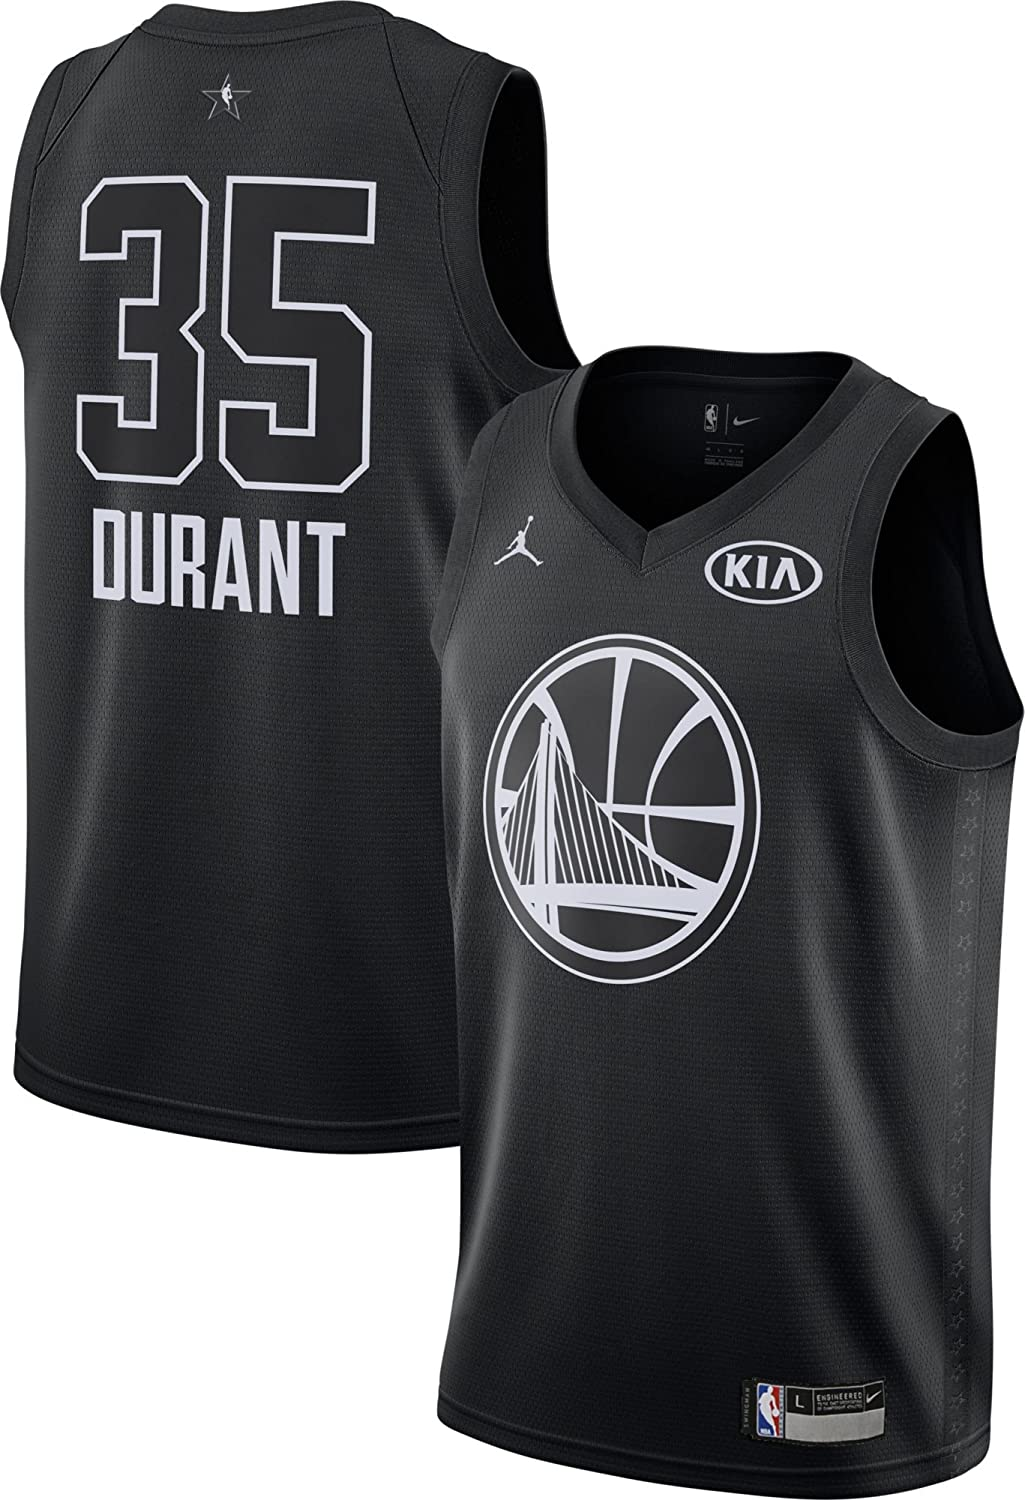 d0e11a8d051b3 Amazon.com: Nike Youth Kevin Durant Swingman Jersey Golden State ...